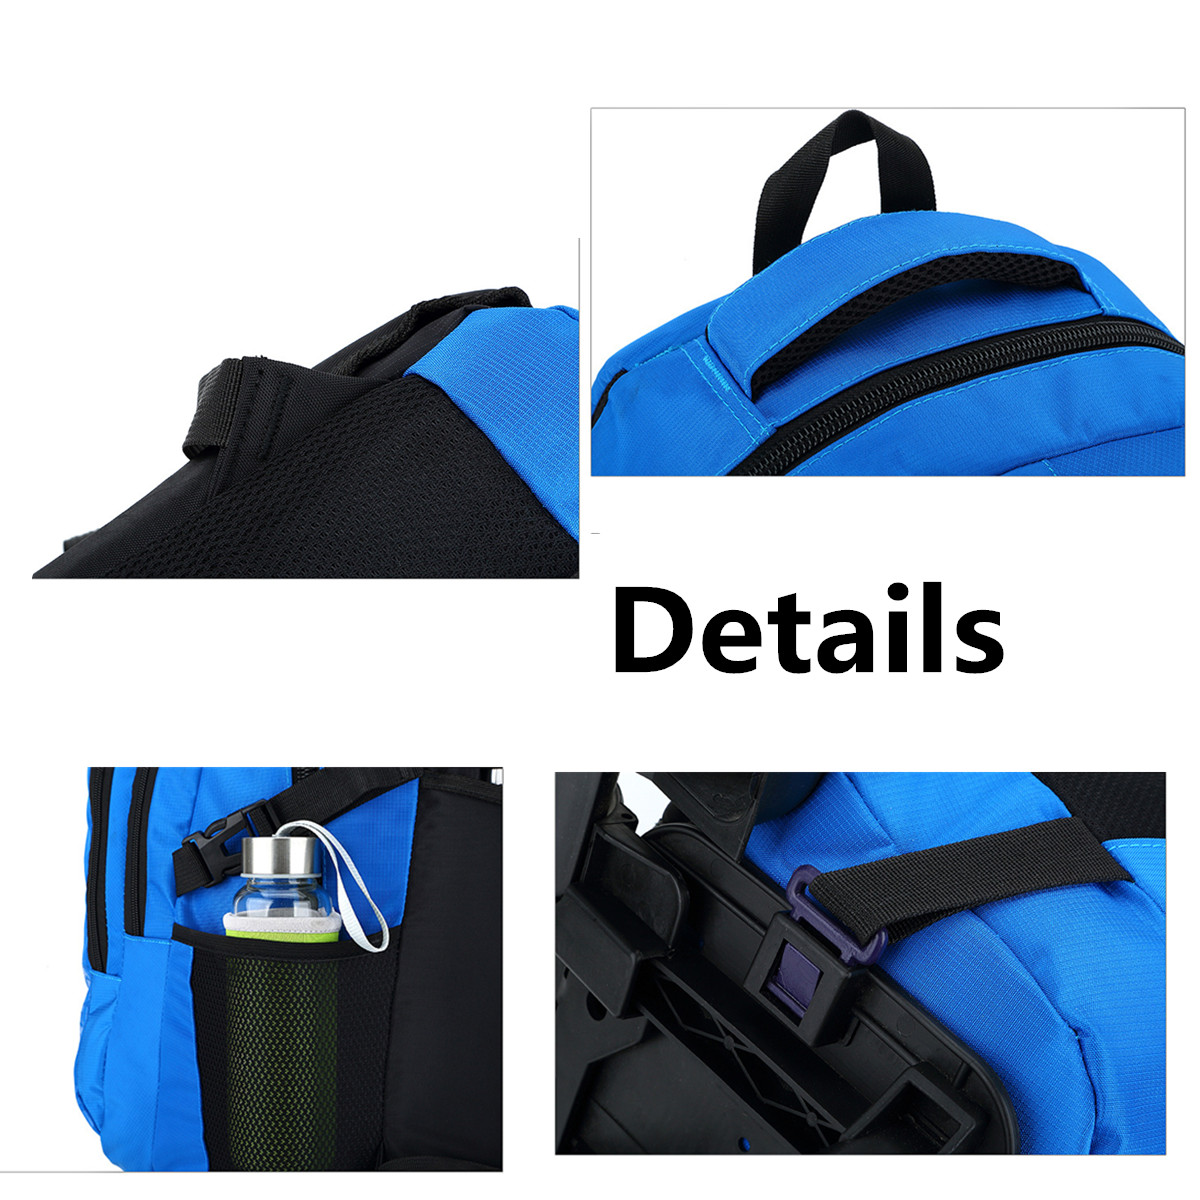 35L Trolley School Bag Camping Travel Luggage Backpack Children Kids Student Bags With Wheels